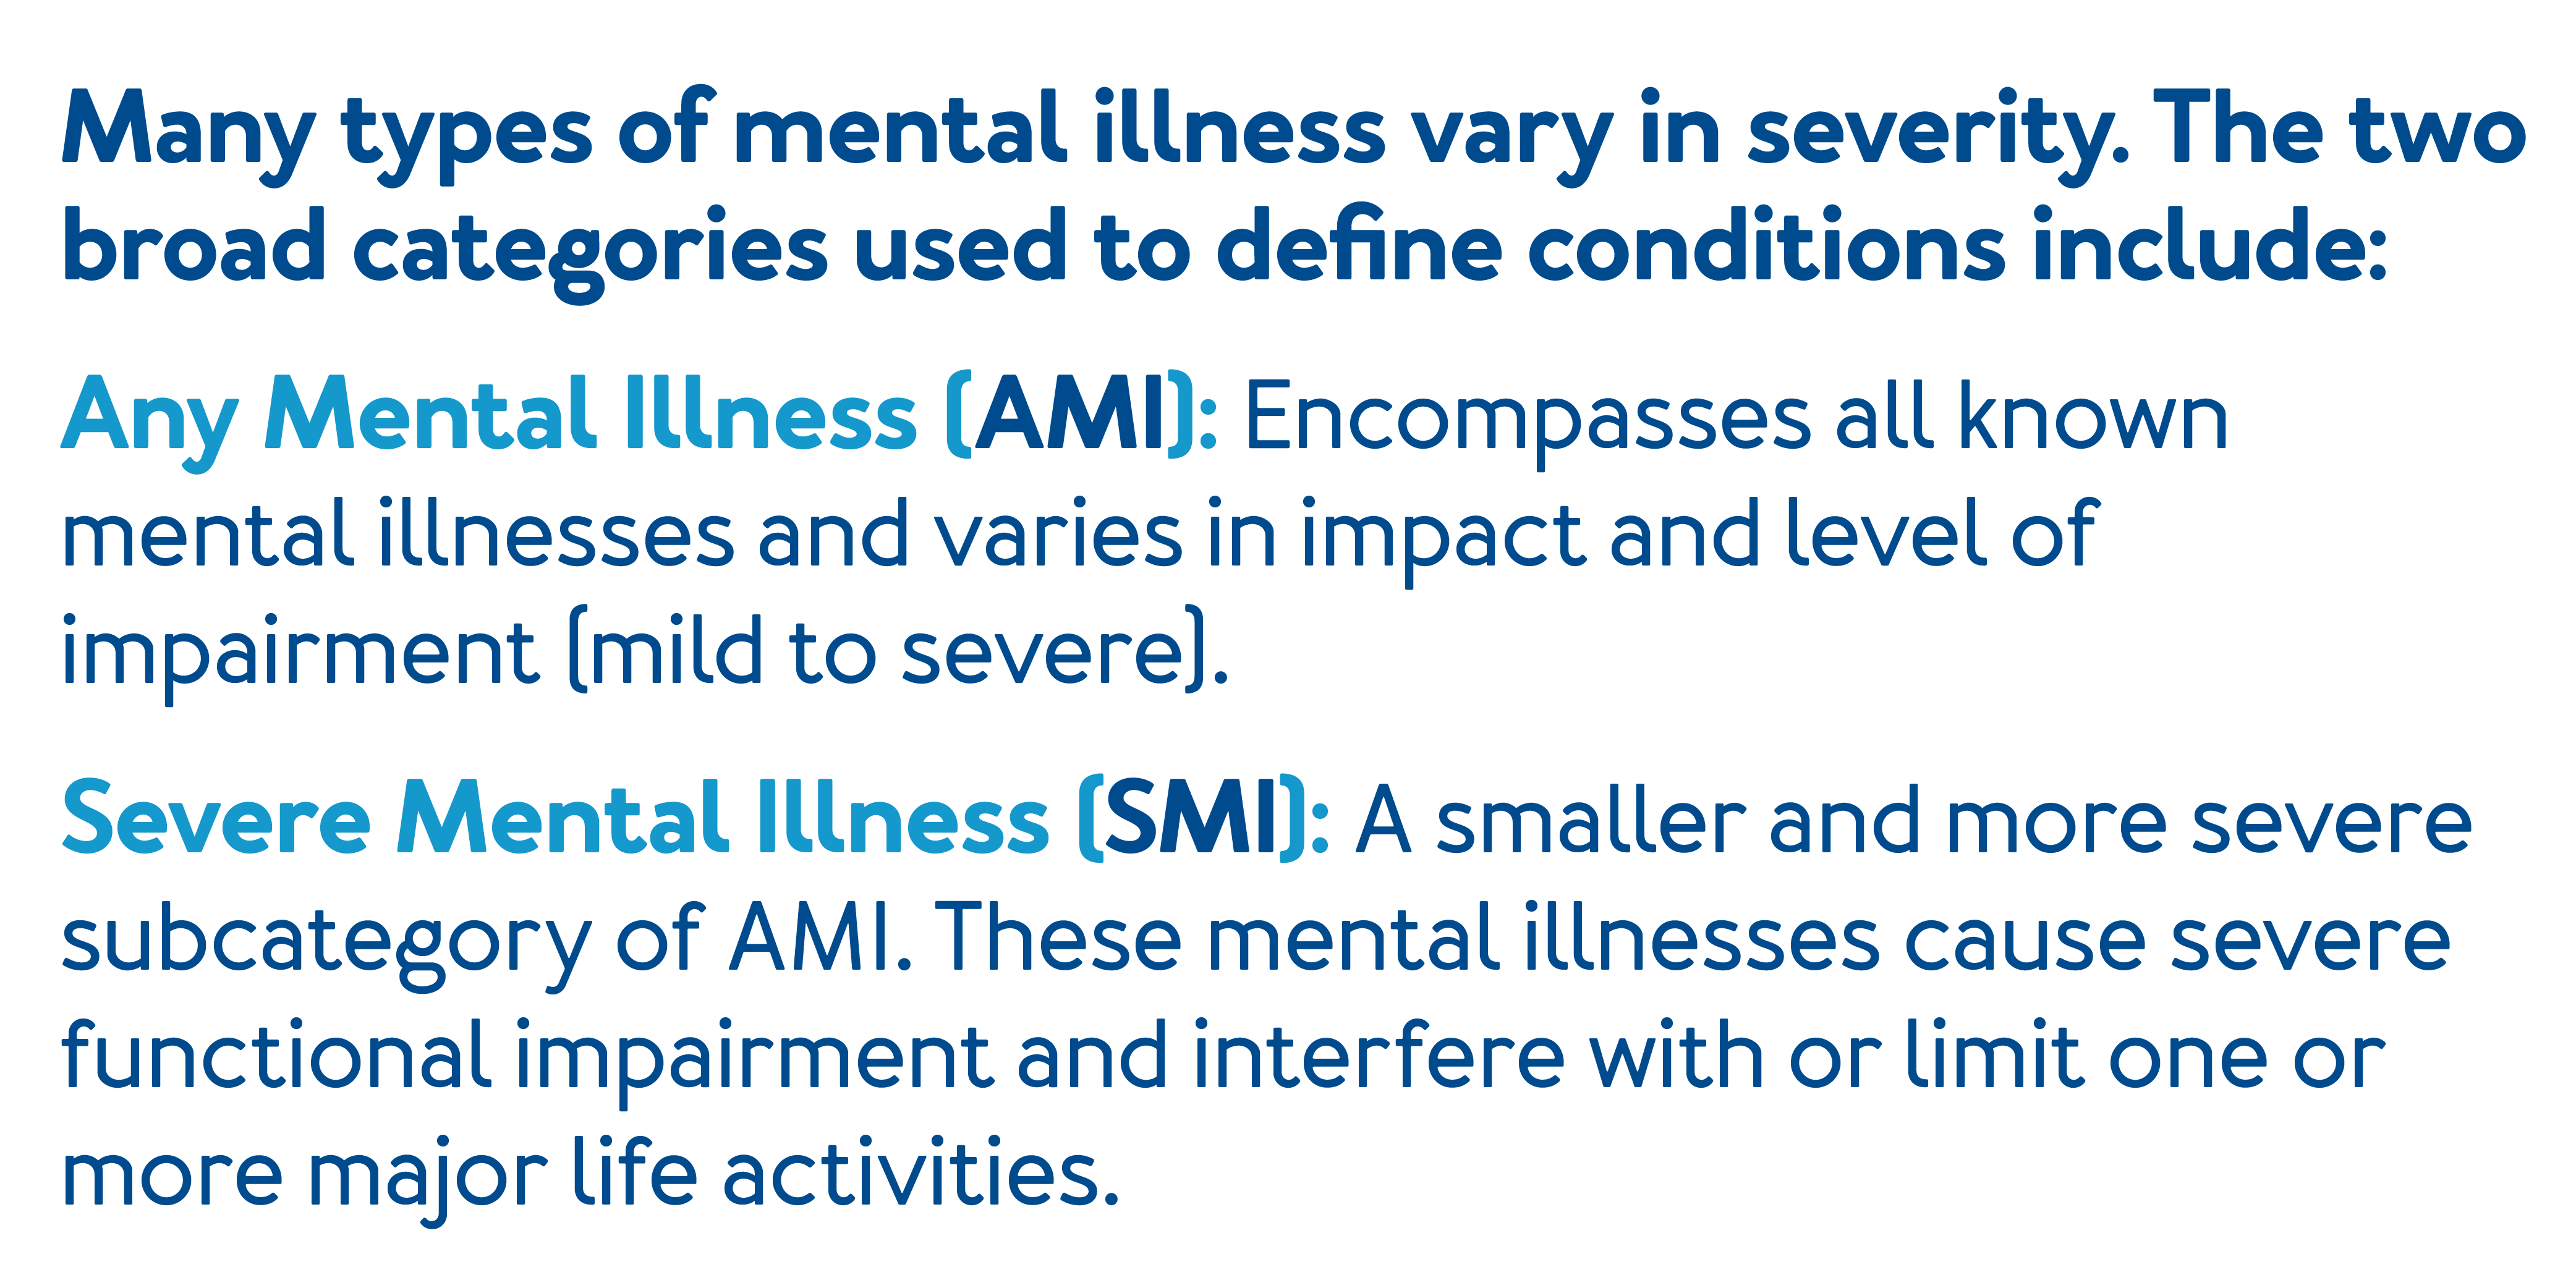 Many types of mental illness vary in severity. The two broad categories used to define conditions include: Any Mental Illness (AMI): Encompasses all known mental illnesses and varies in impact and level of impairment (mild to severe) Severe Mental Illness (SMI): A smaller and more severe subcategory of AMI. These mental illnesses cause severe functional impairment and interfere with or limit one or more major life activities.